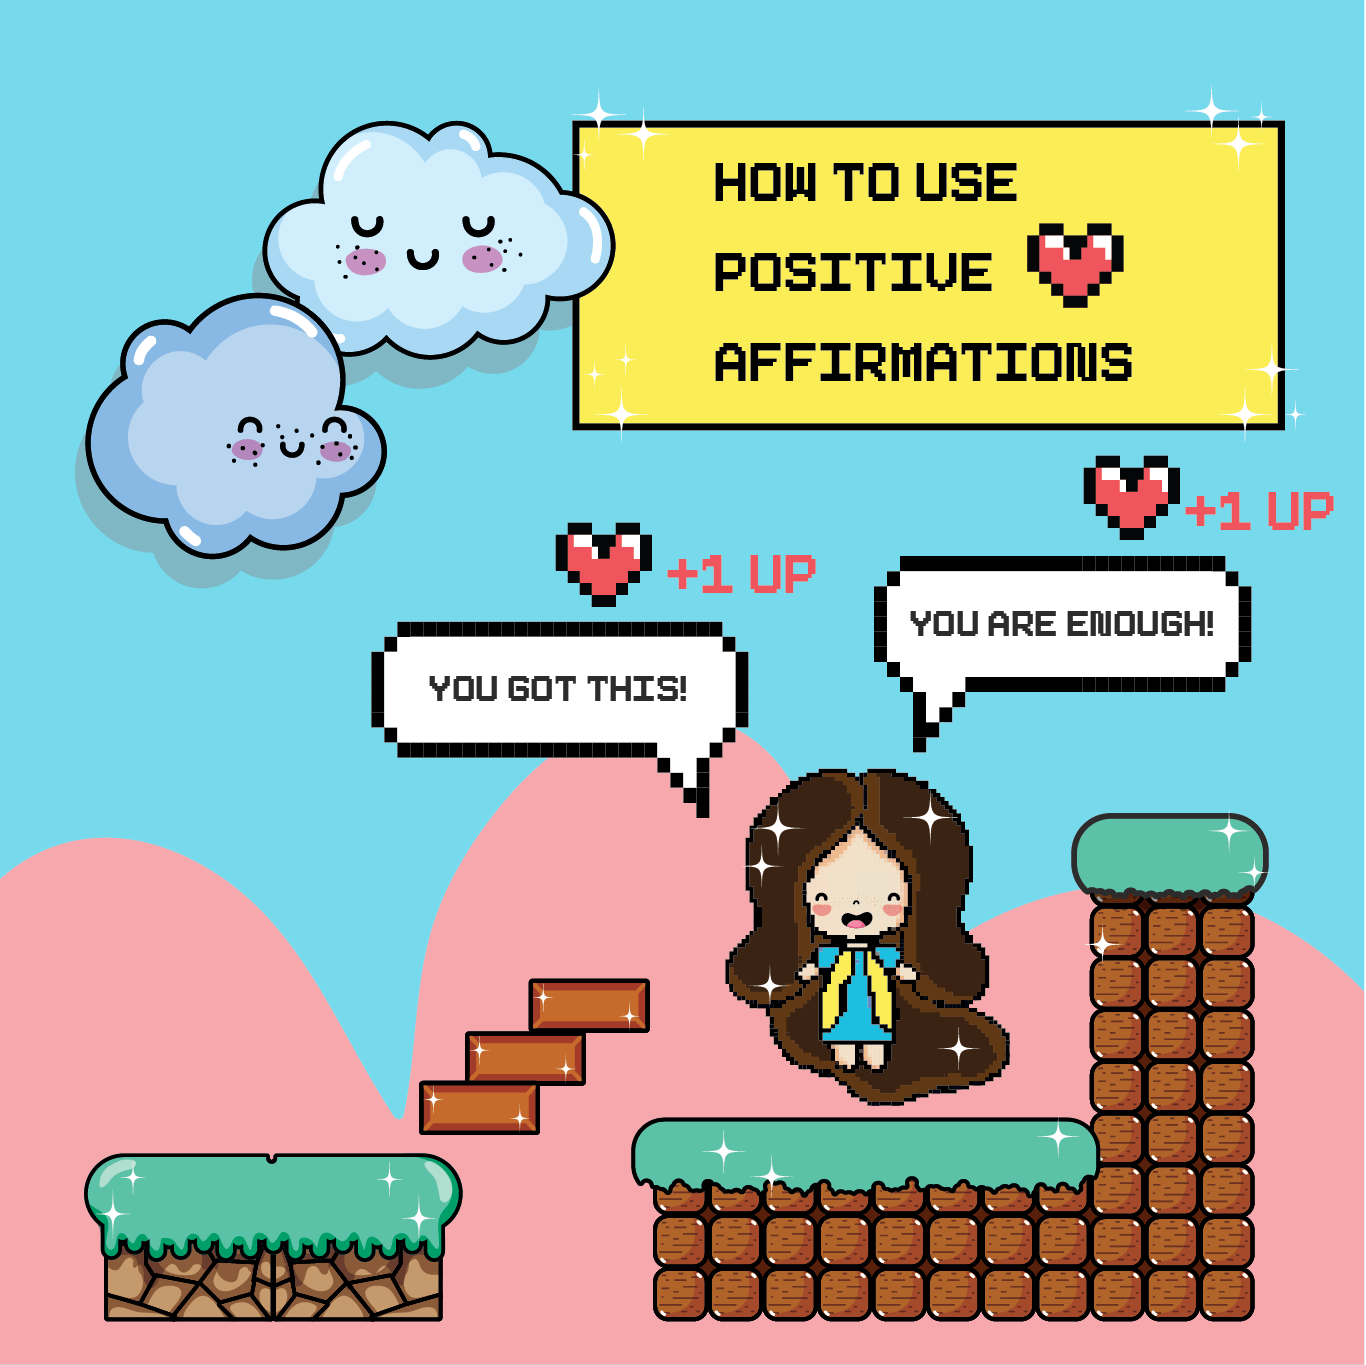 Using-positive-self-affirmations-01-2